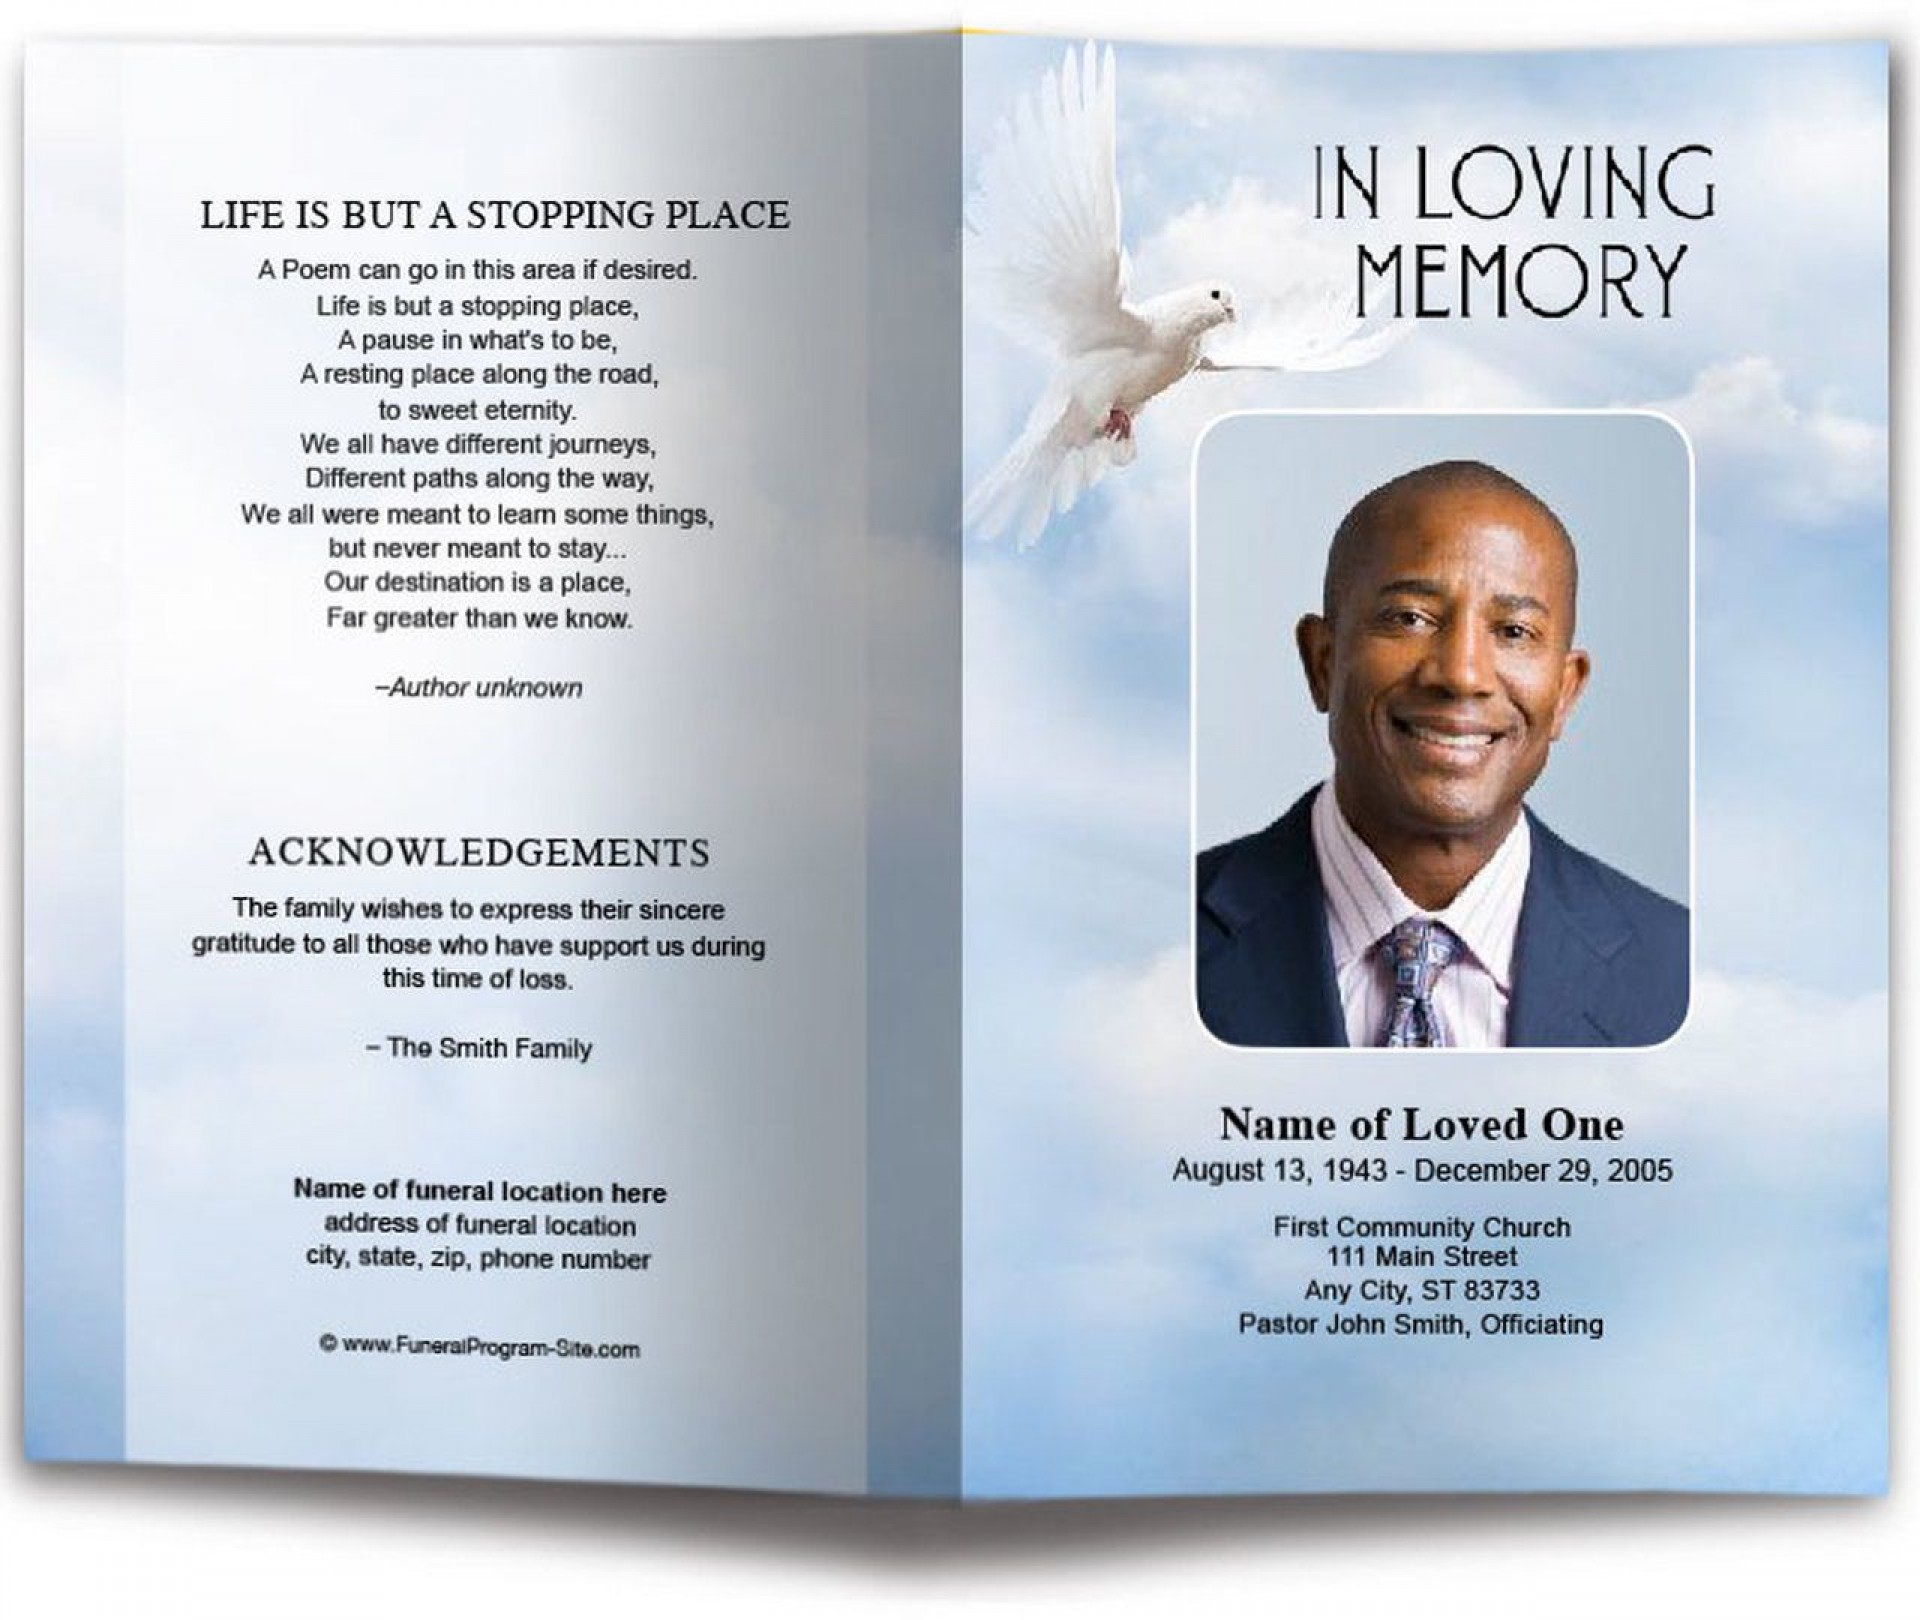 010 Incredible Funeral Program Template Free High Def  Blank Microsoft Word Layout Editable Uk1920